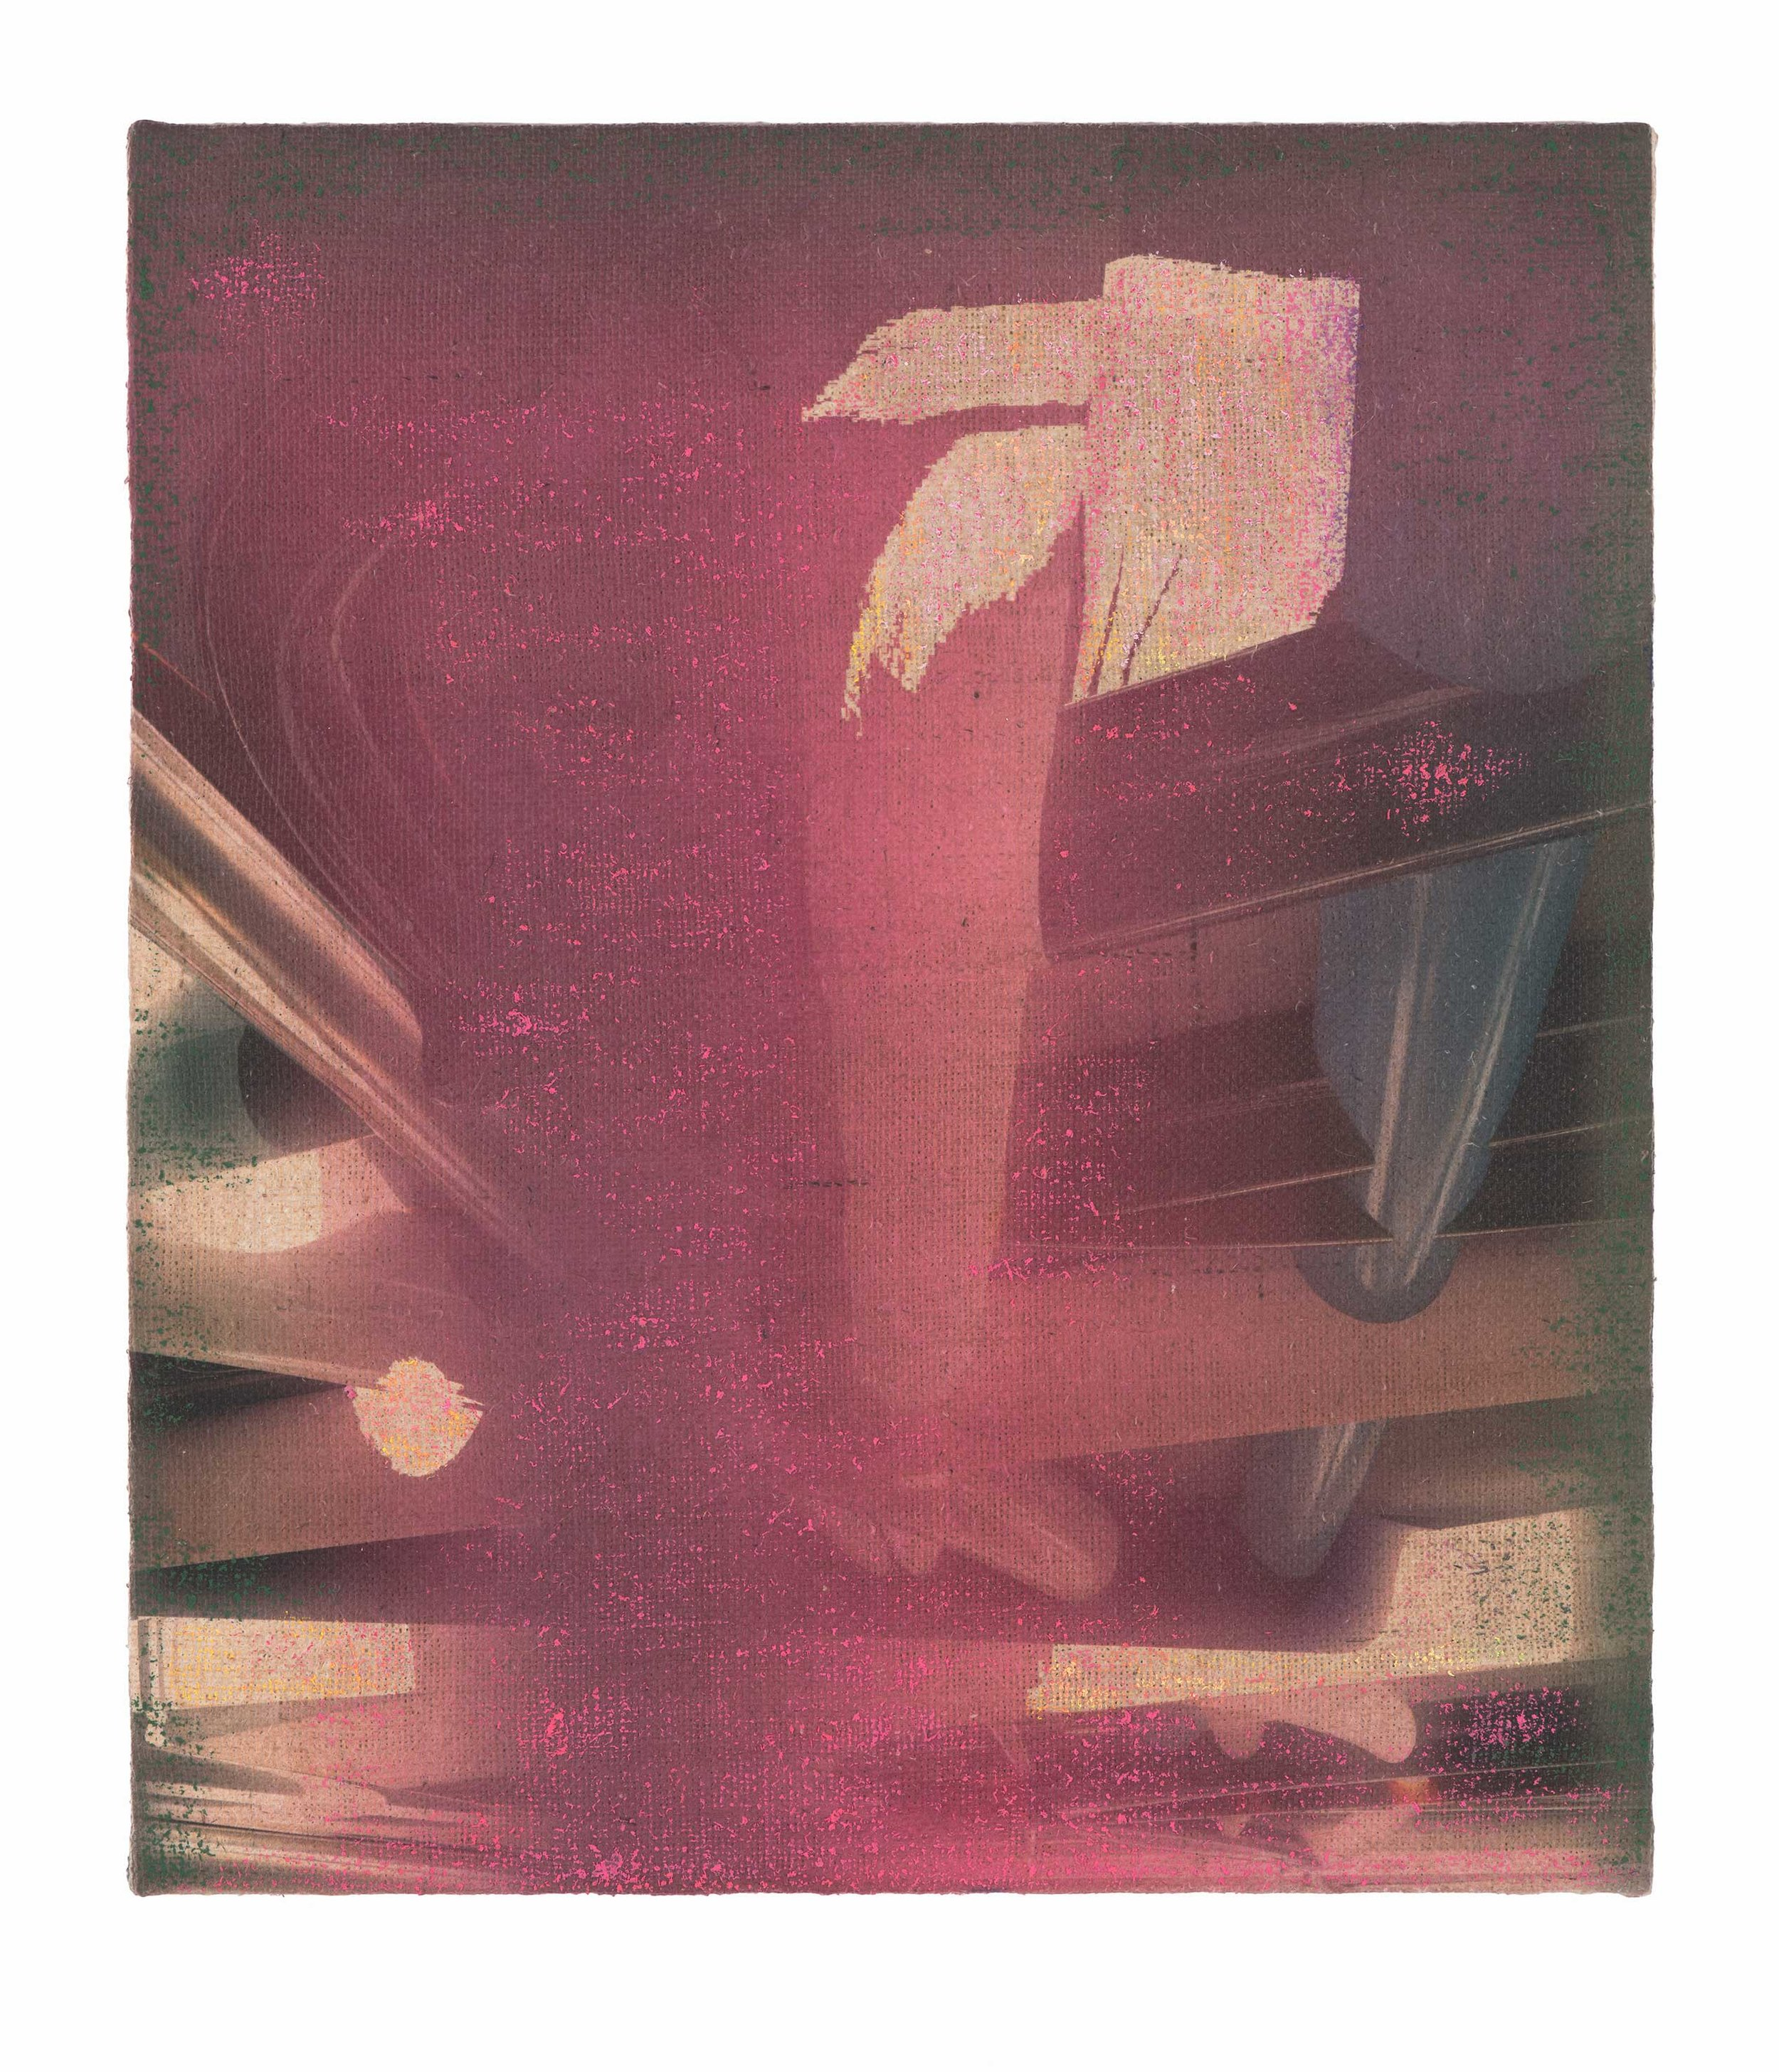 PETER ALWAST  Untitled (Pink)  2018  oil pastel, archival UV cured print on hessian, 35.5 x 50.5cm